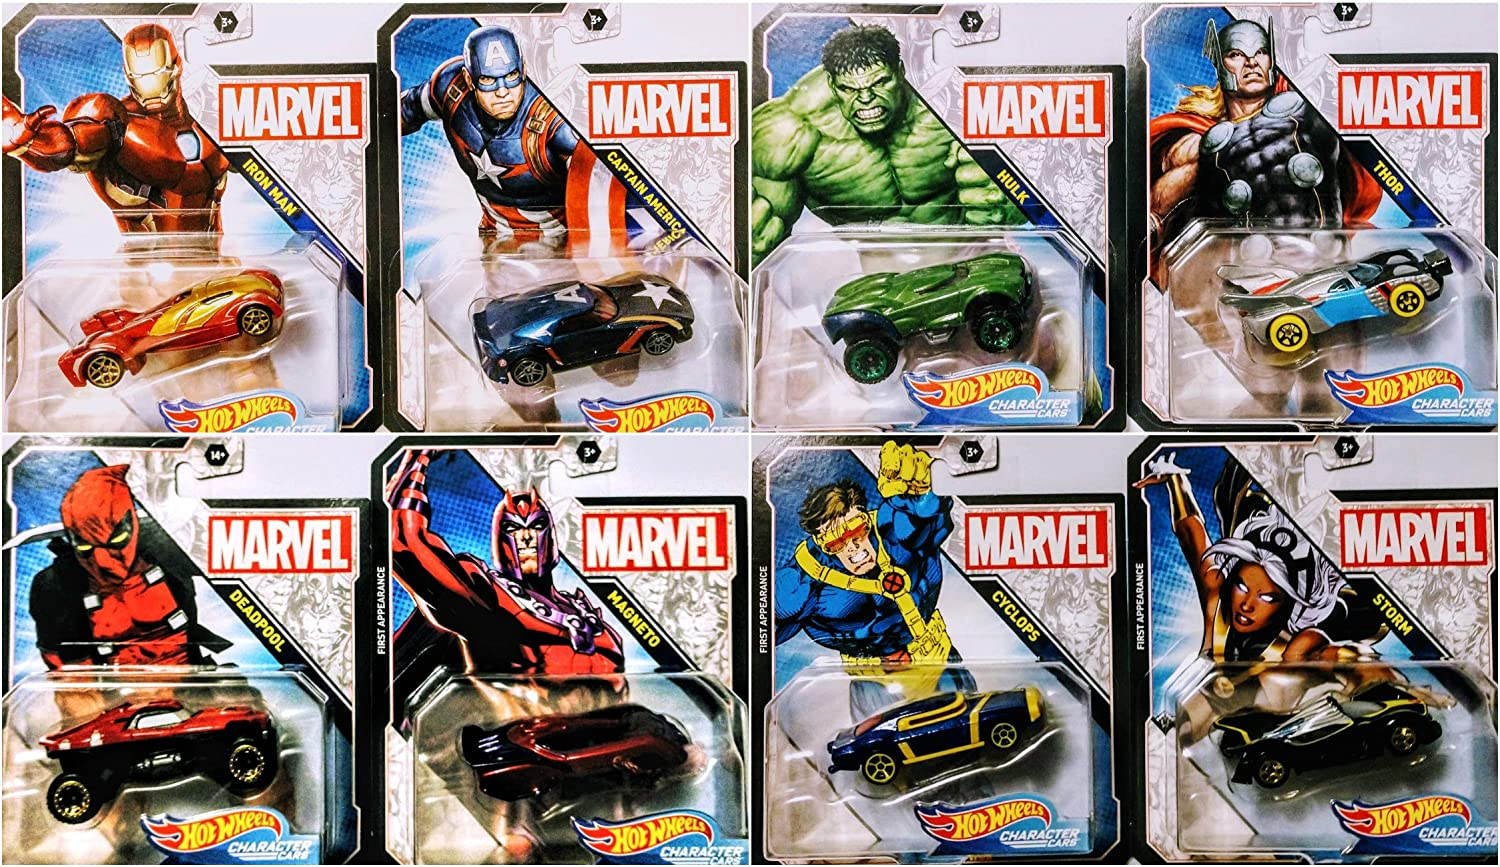 Hot Wheels 2020 Character Cars Complete Set of 8 Includes Iron Man Thor Hulk Captain America Deadpool Storm Magneto Cyclops